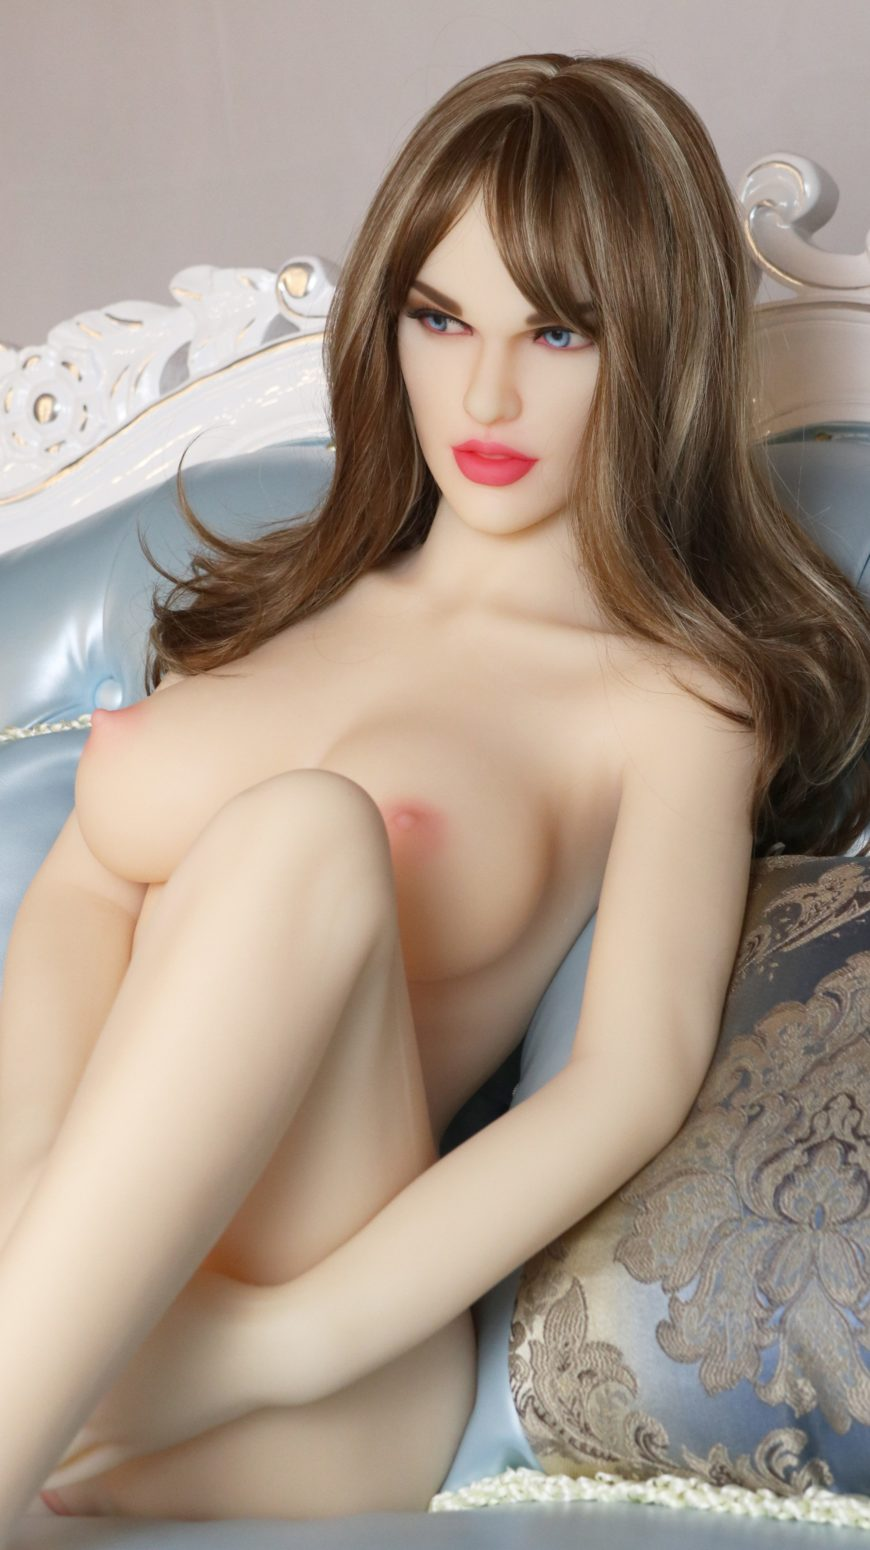 Sex-Dolls-Olivia-from-Dirty-Knights-Sex-Dolls-1 (1)